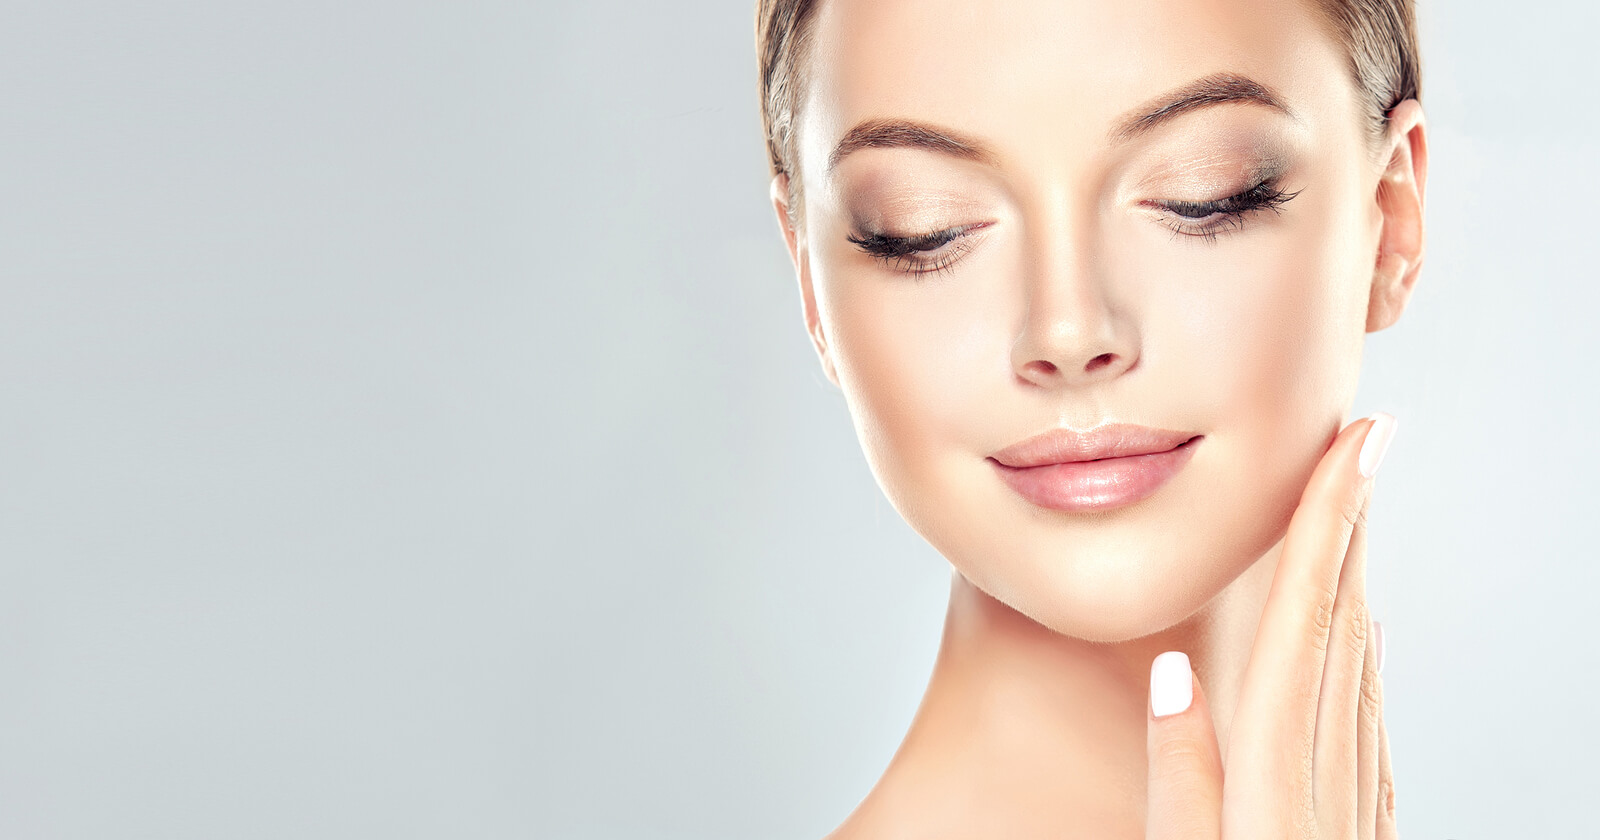 How Is a Vampire Facelift® Different Than a Traditional Surgical Facelift?